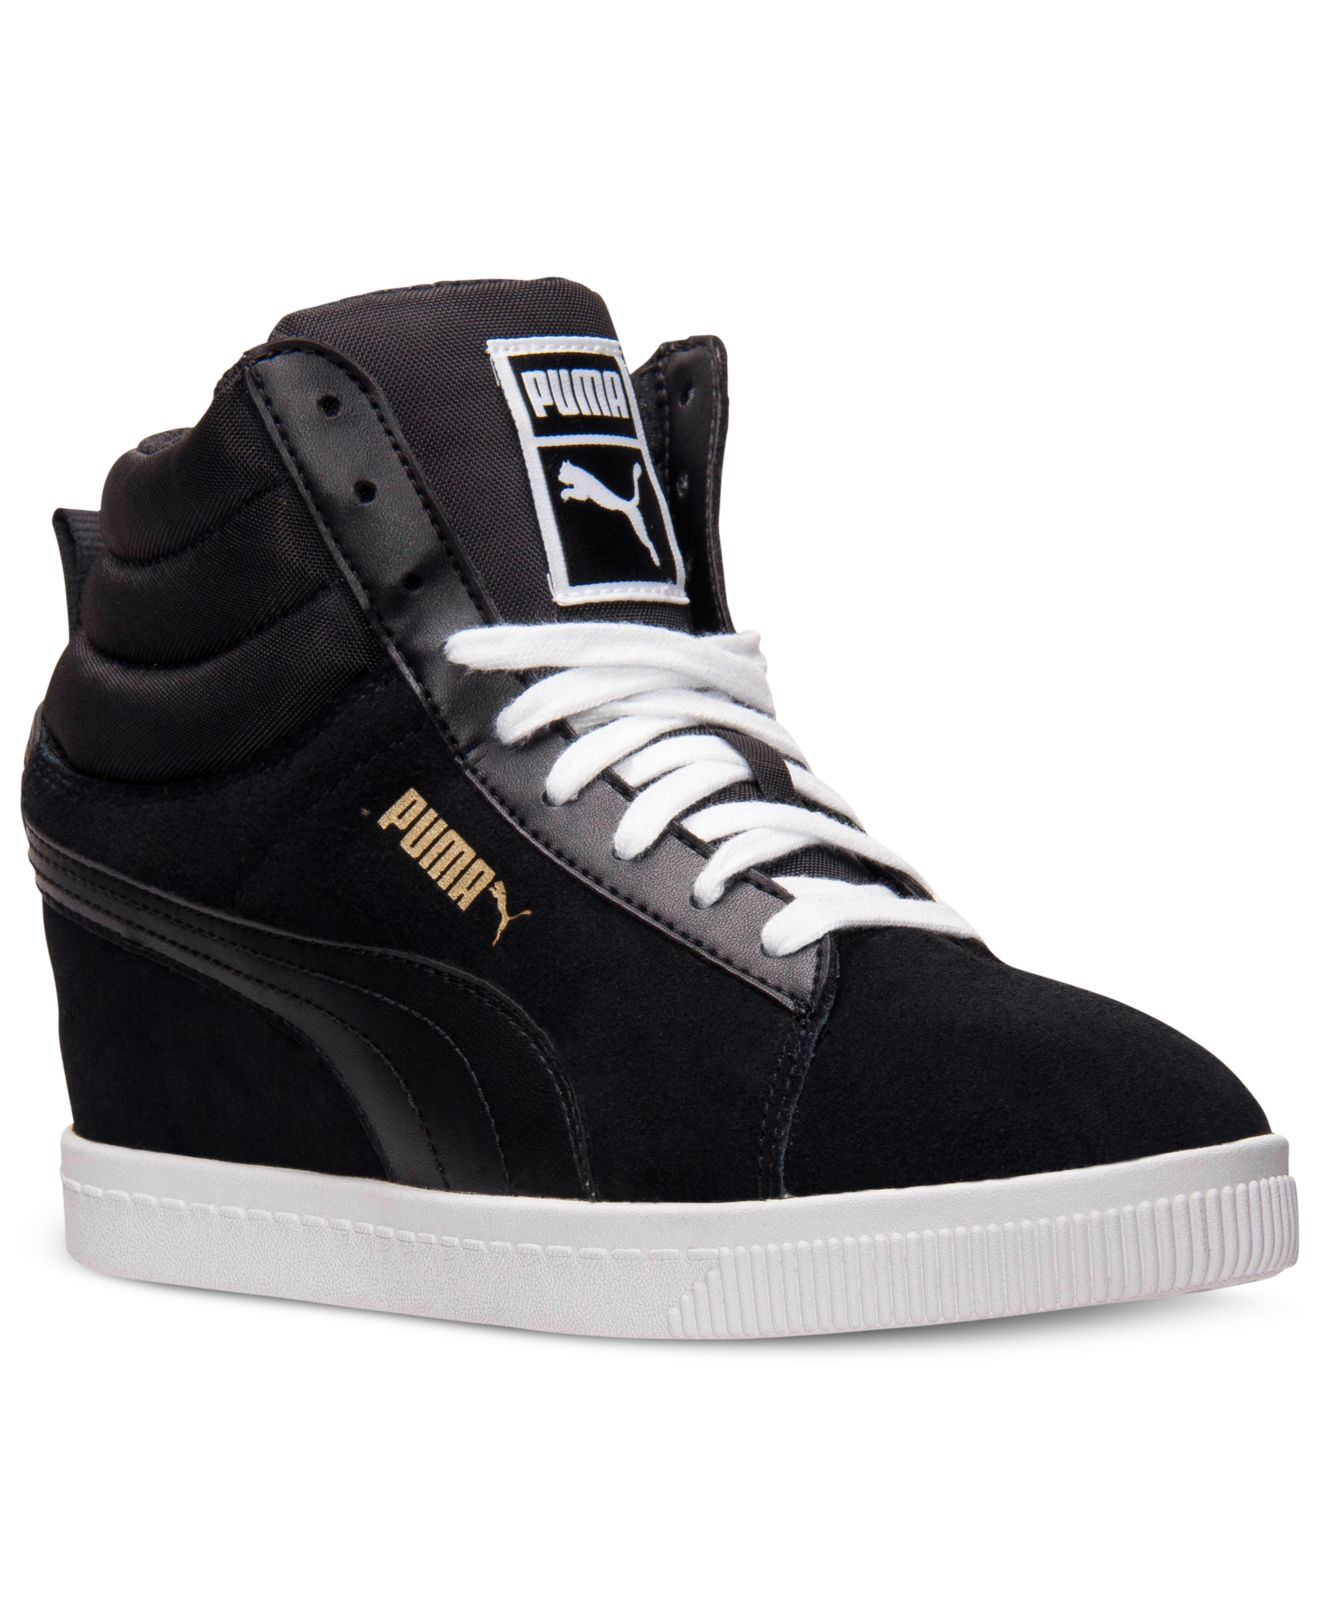 s classic wedge casual sneakers from finish